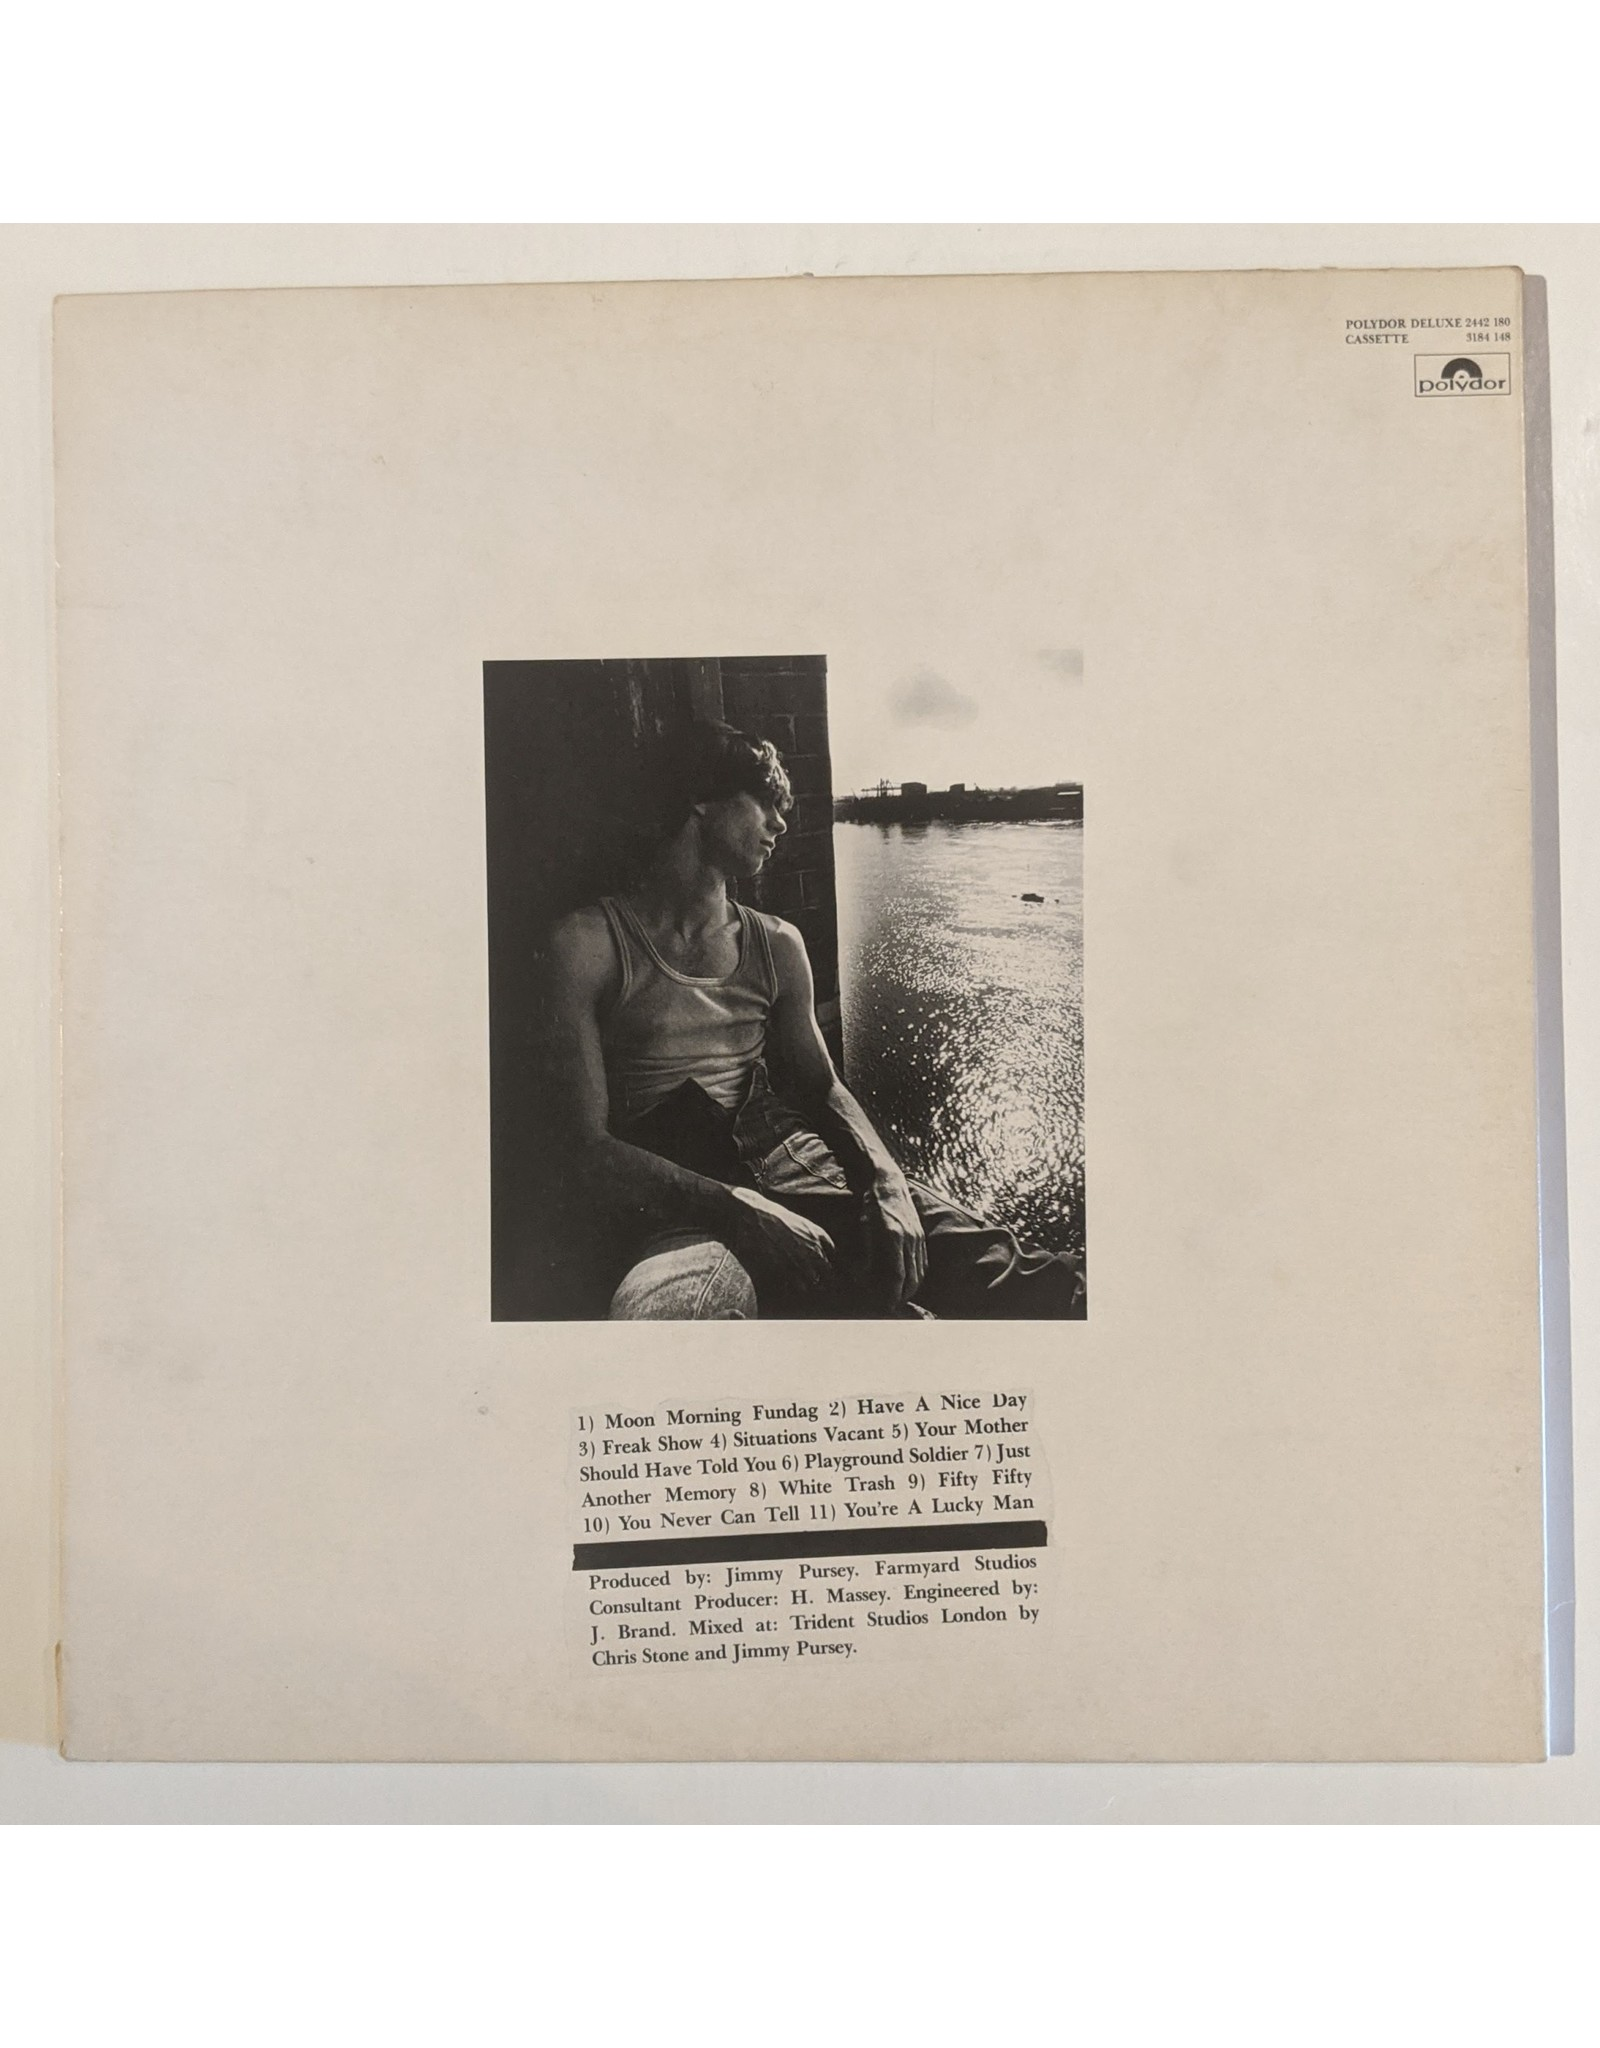 USED: Jimmy Pursey: Imagination Camouflage LP